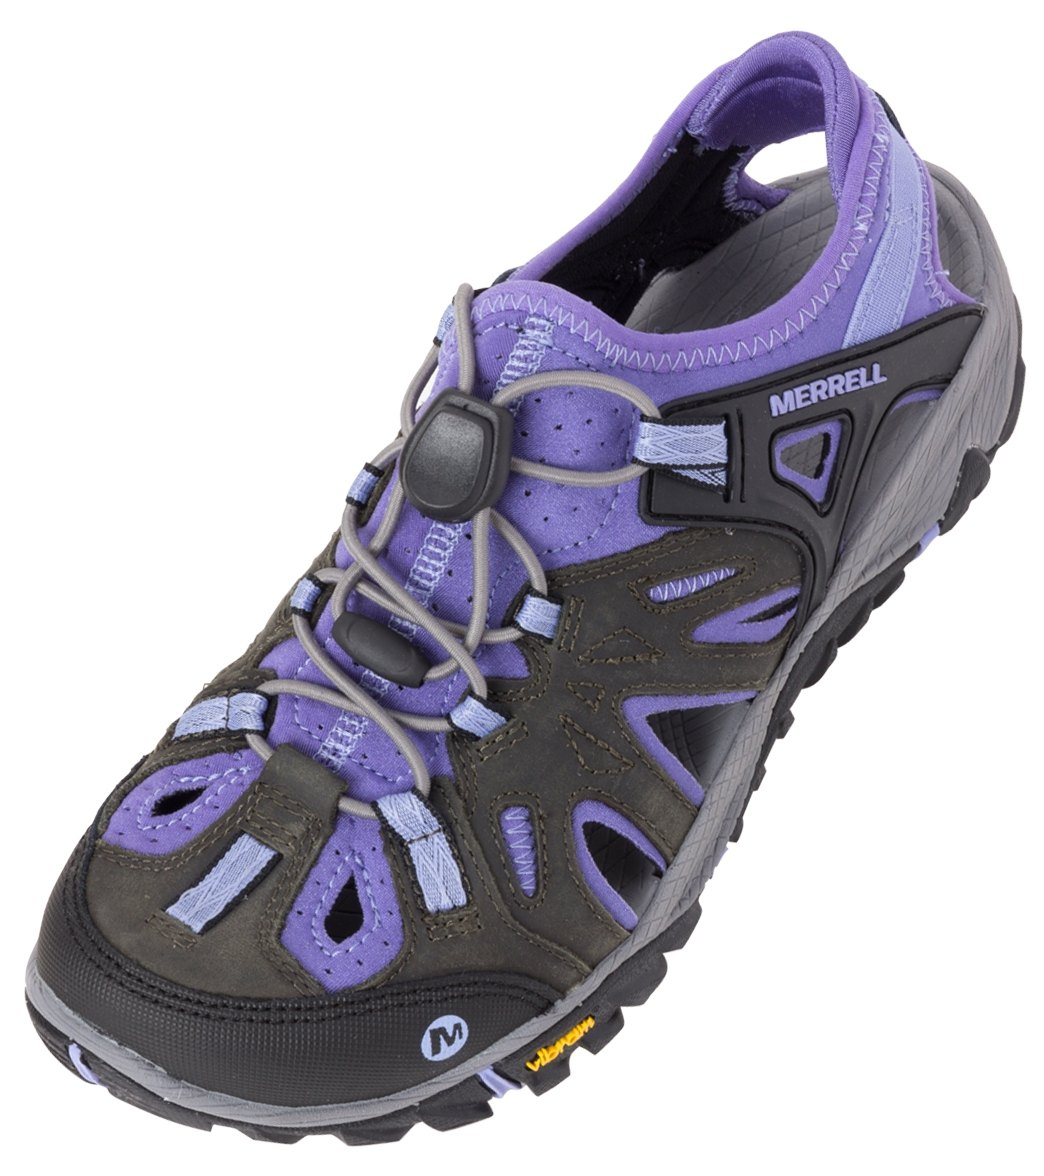 5462587305 Merrell Women's All Out Blaze Sieve Water Shoes